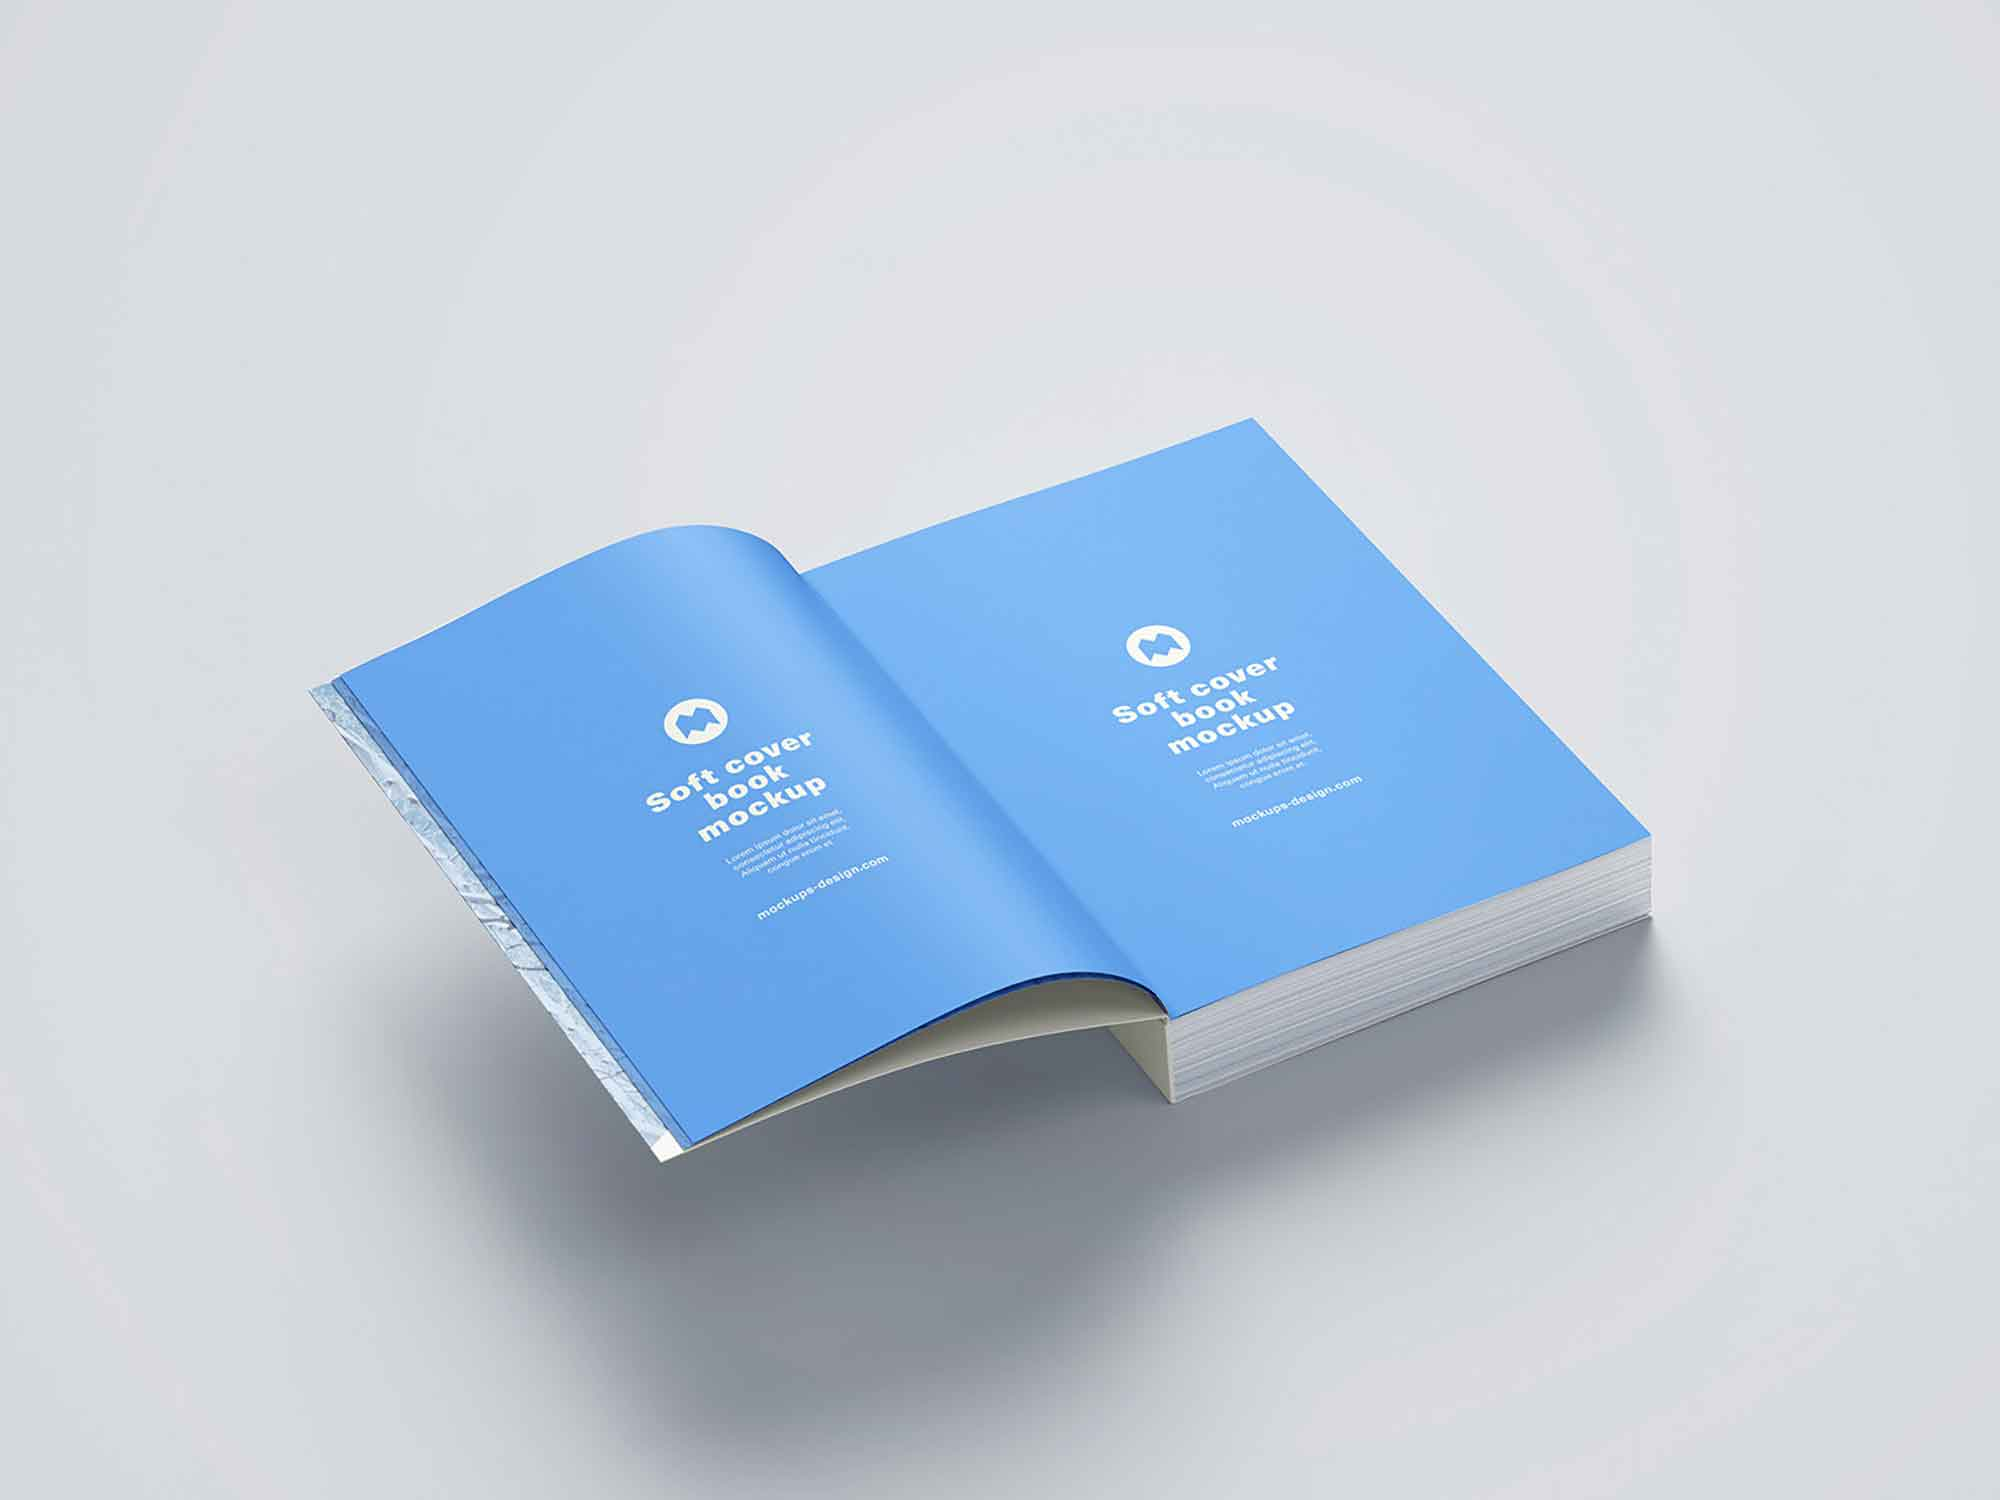 Thick Softcover Book Mockup 6